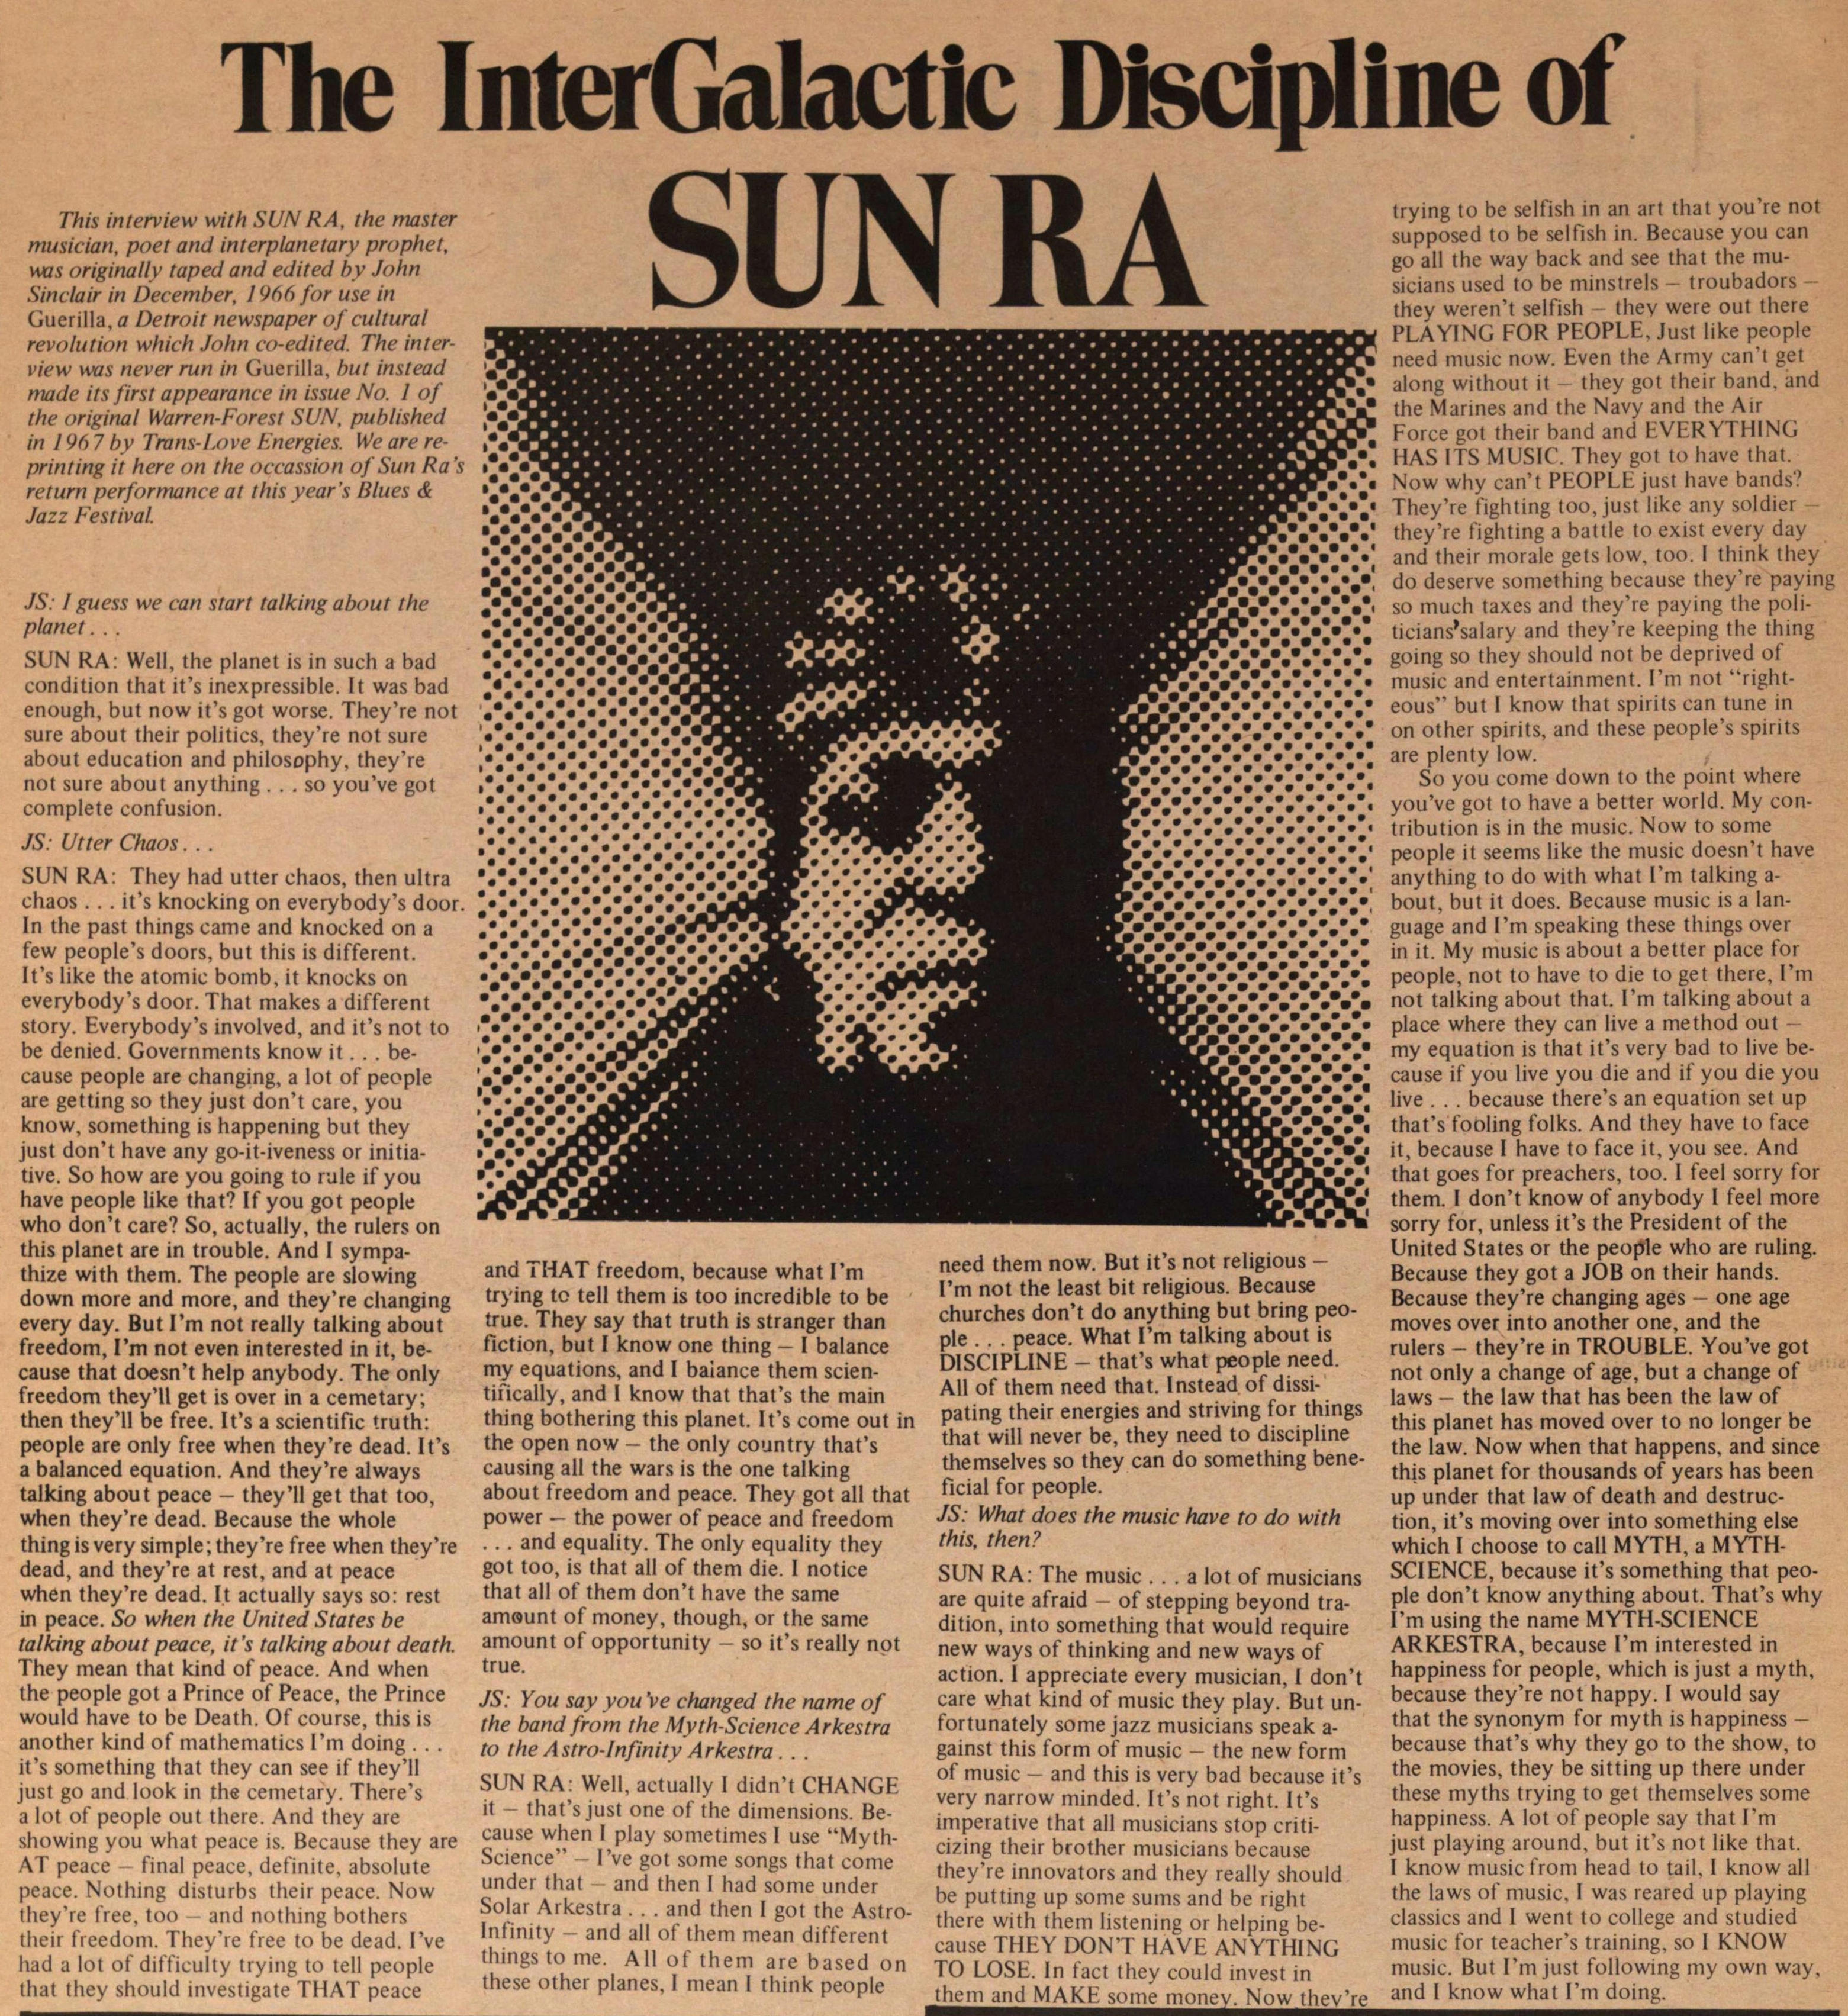 The Intergalactic: Discipline Of Sunra image